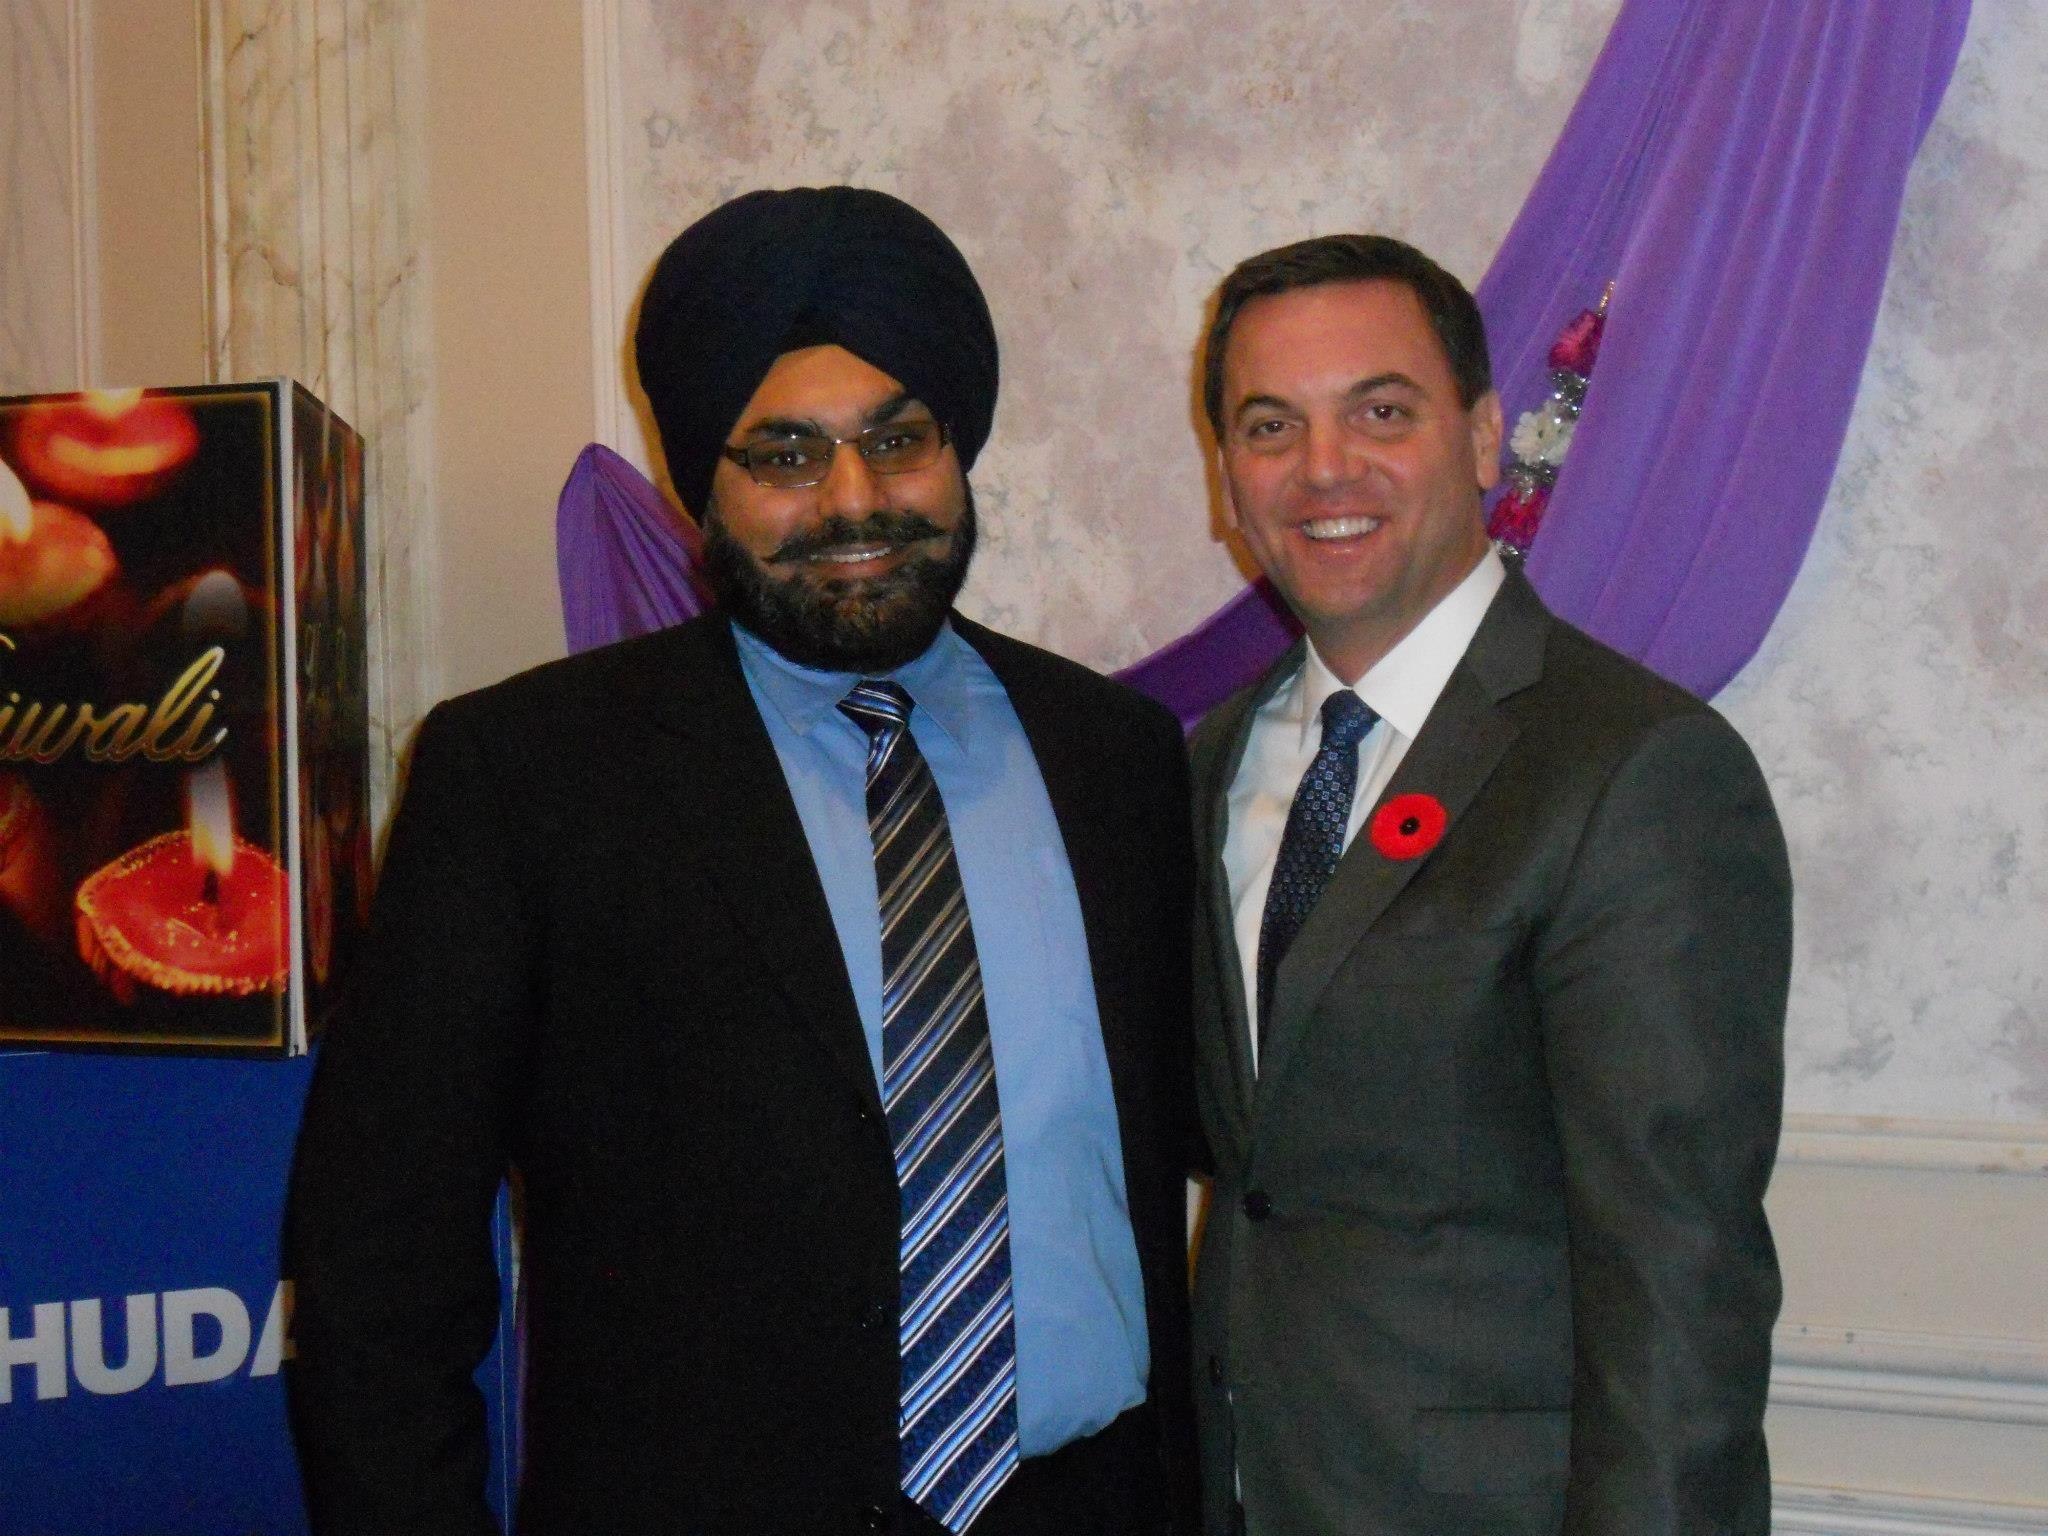 Randeep Sandhu nominated as Ontario PC Candidate for Brampton West